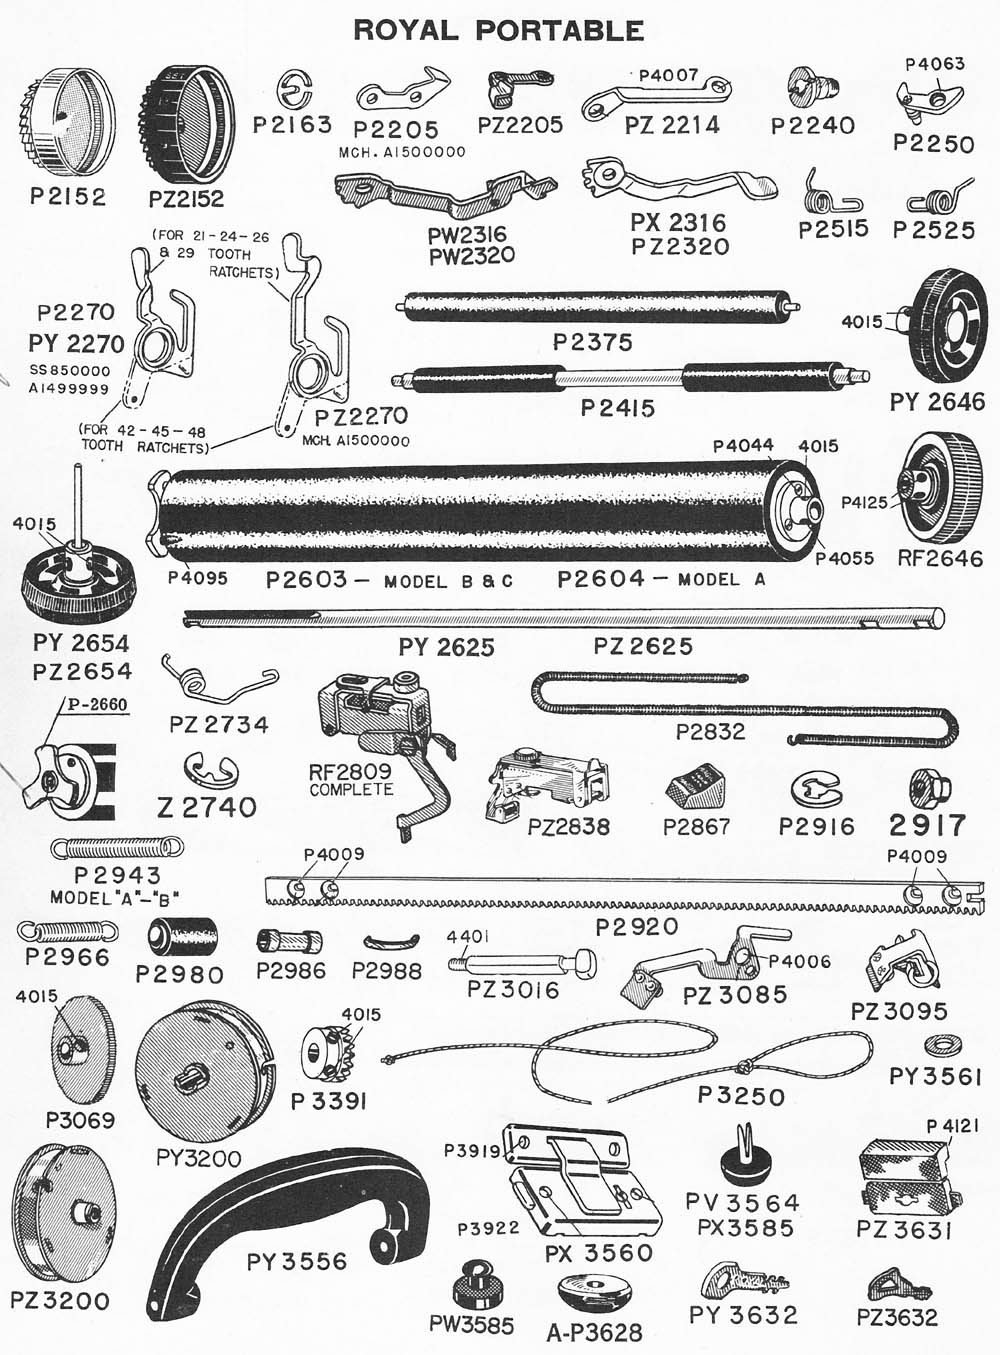 typewriter parts  royal portable